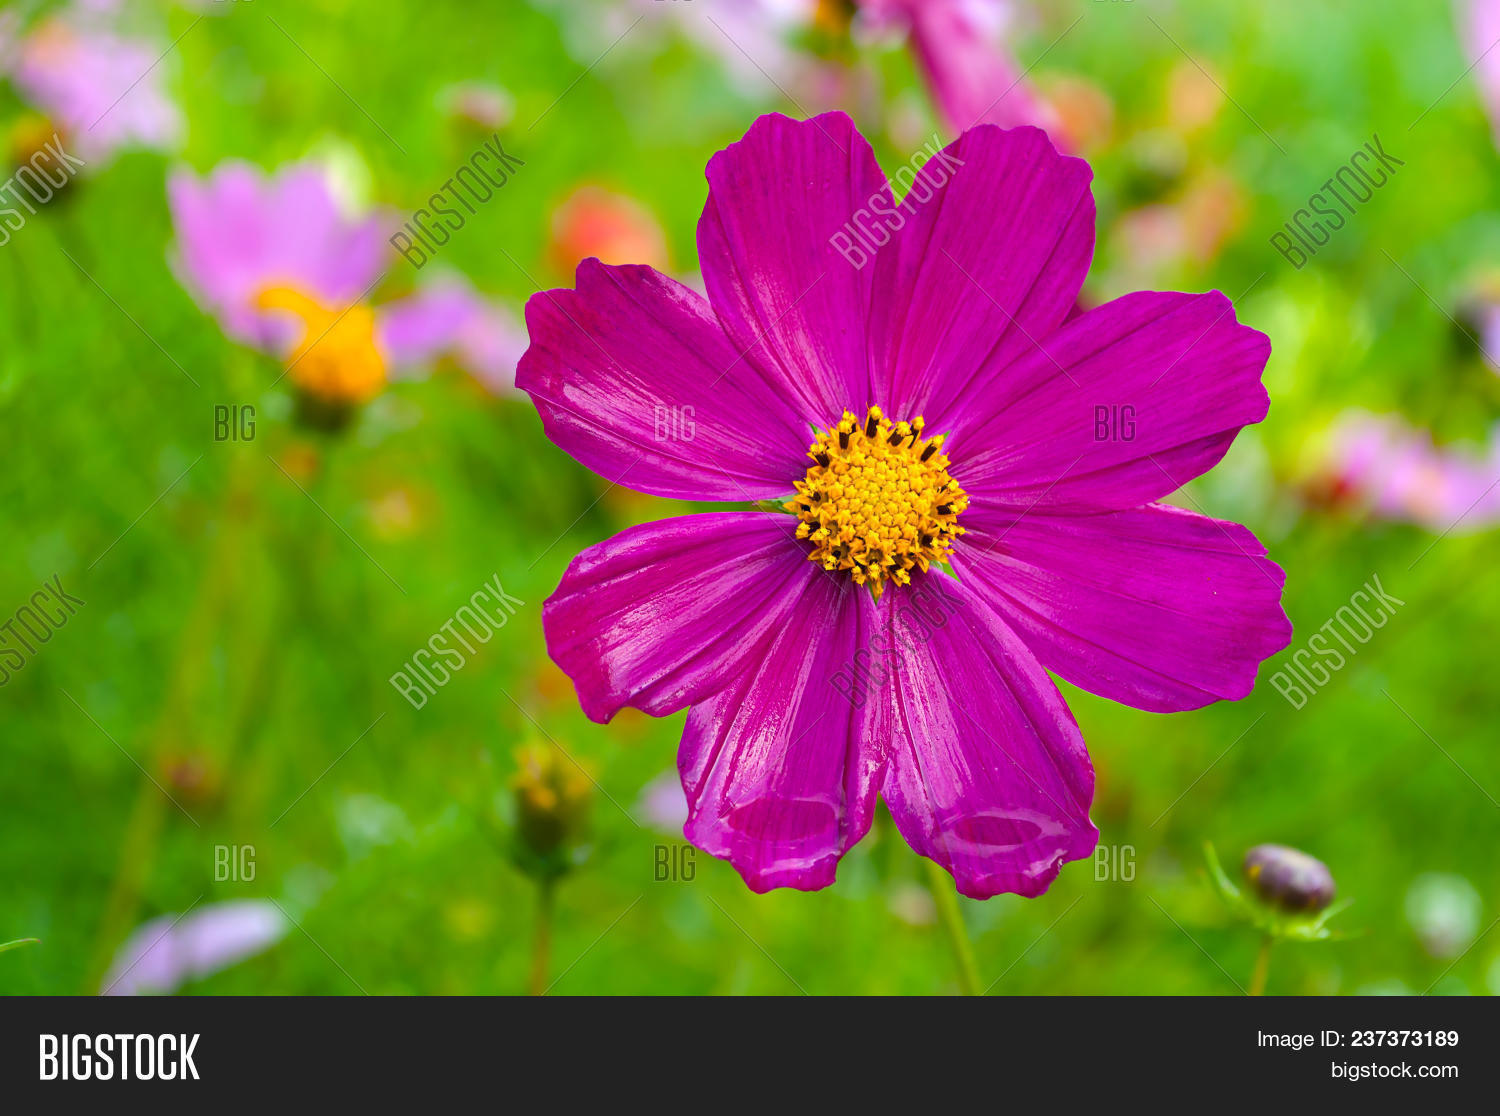 Pink cosmos flower image photo free trial bigstock pink cosmos flower in latin cosmos bipinnatus at the summer garden selective focus mightylinksfo